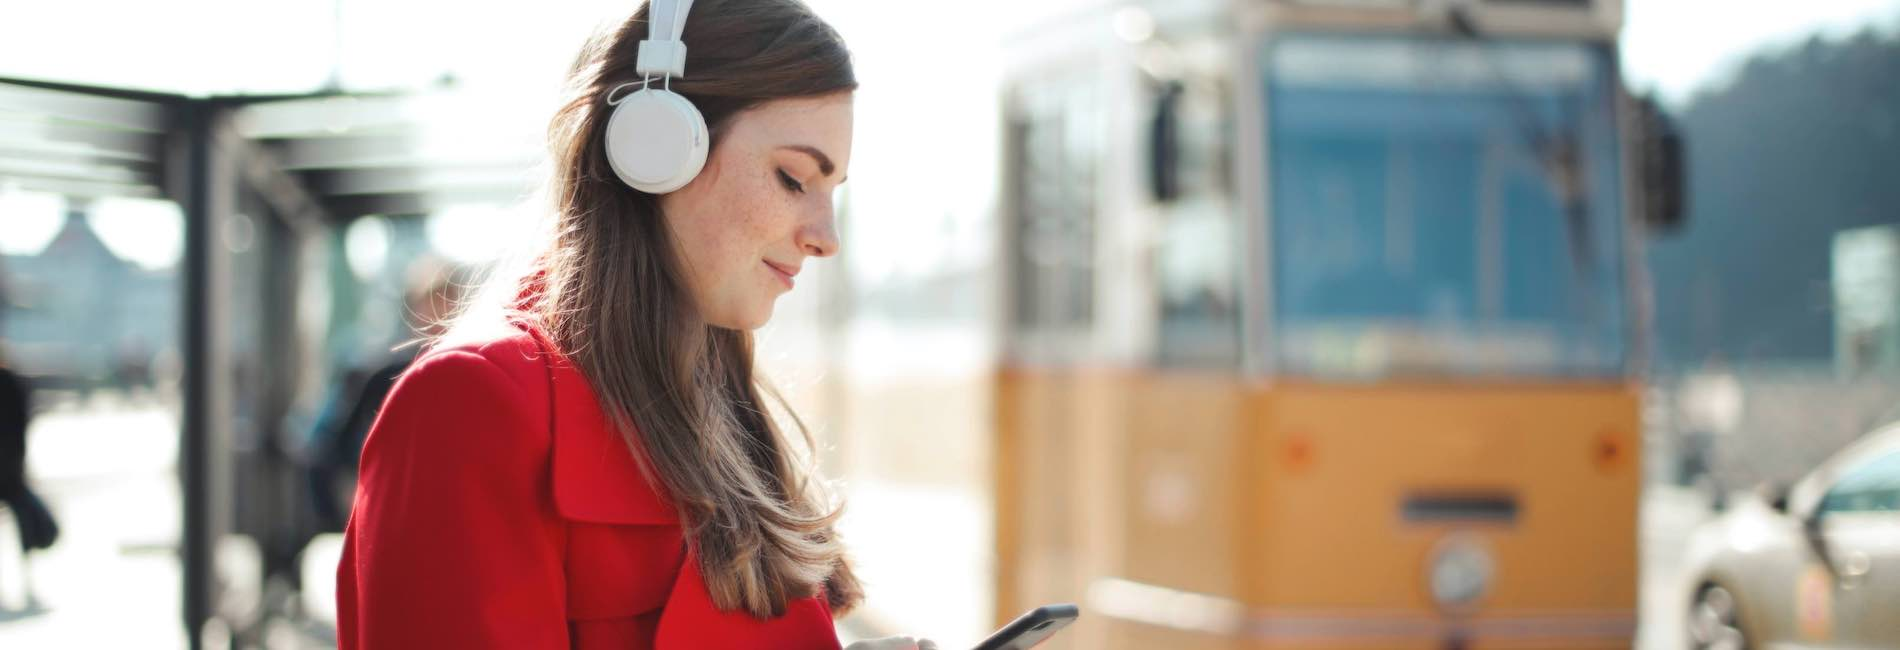 Professional woman with headphones